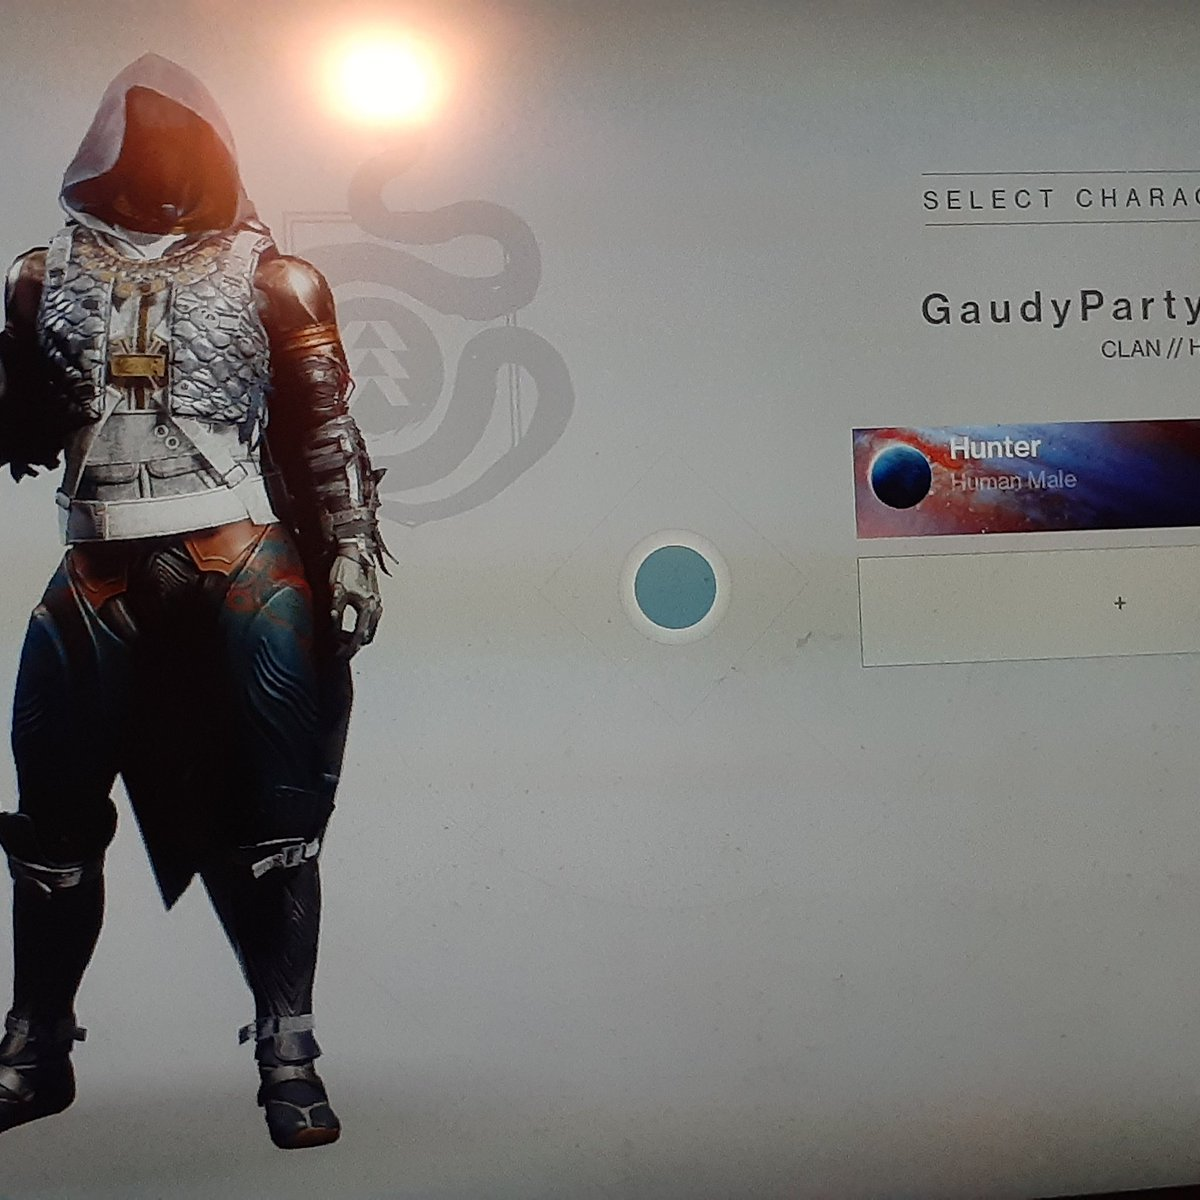 Come join me for some late night gaming and  in trying to get some good stuff in #destiny2 link in bio #latenight #latenightgaming #twitch #twitchstreamer #smallstreamer #SmallStreamersConnect https://t.co/EtCac8h8G2